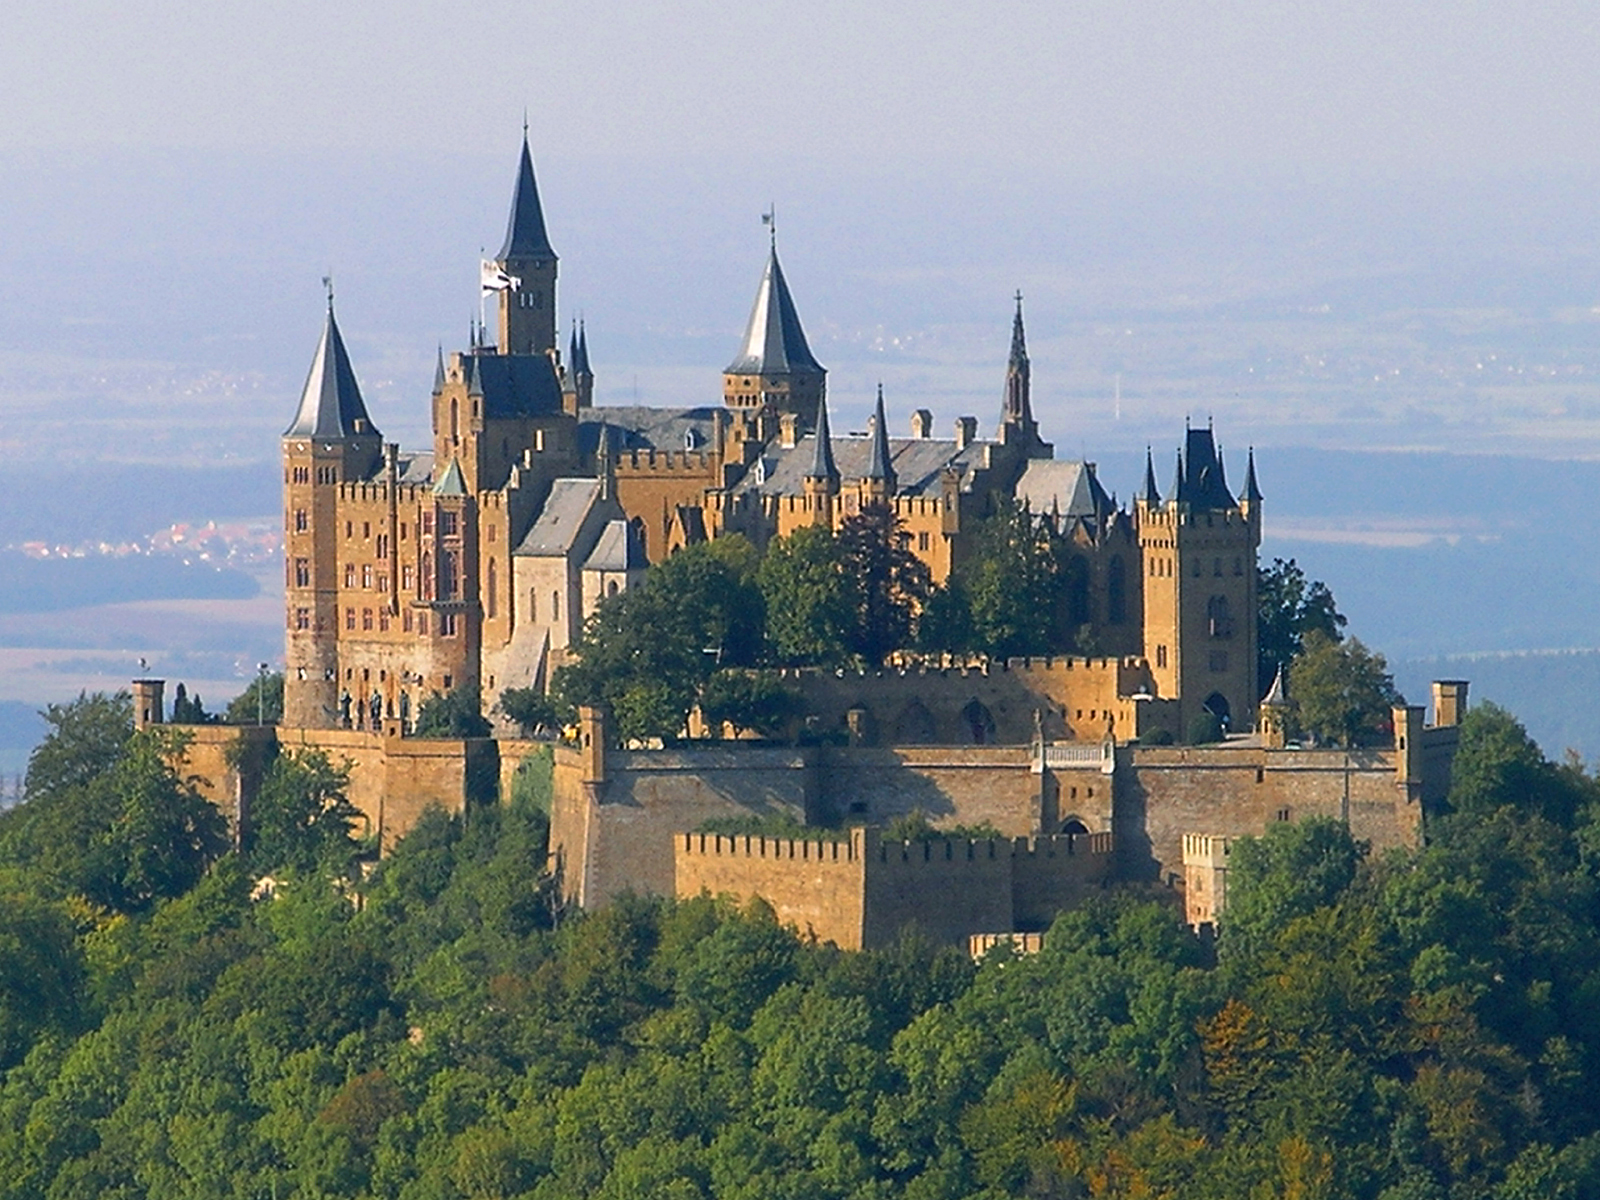 Burg hohenzollern germany